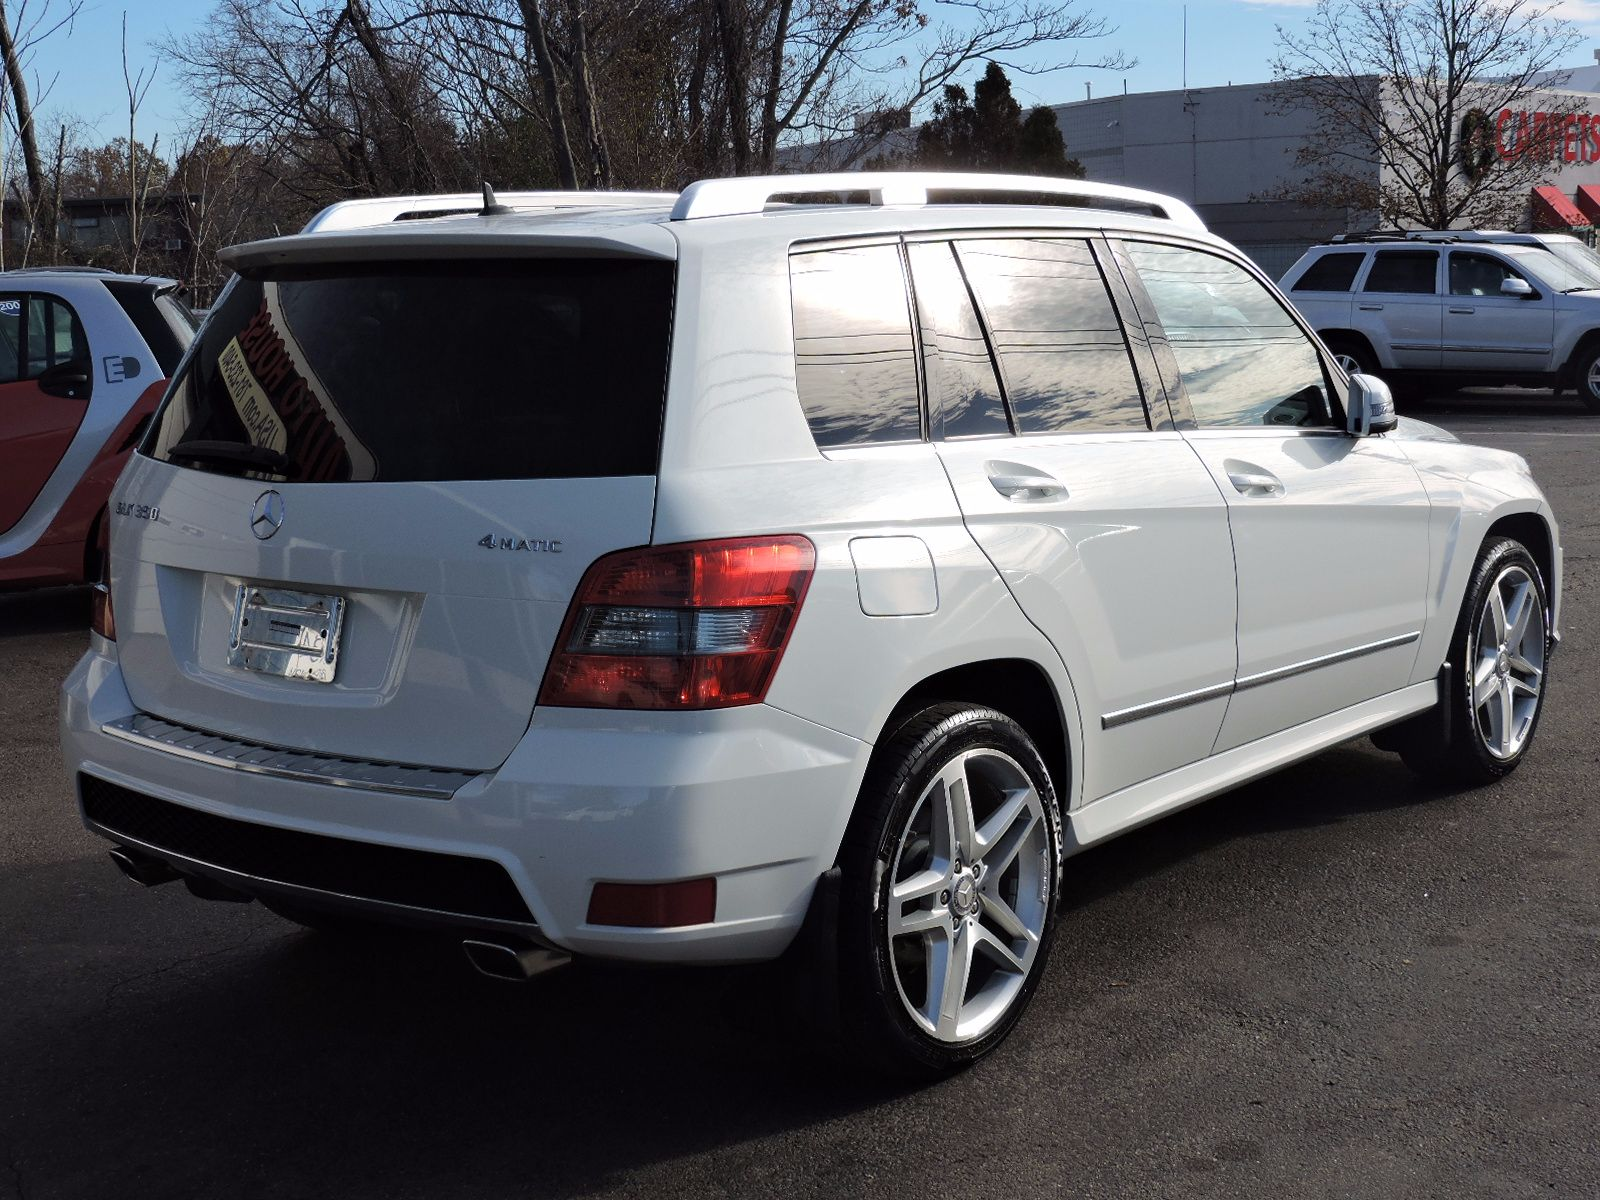 Used 2011 mercedes benz glk 350 glk 350 at saugus auto mall for Mercedes benz glk 350 maintenance schedule